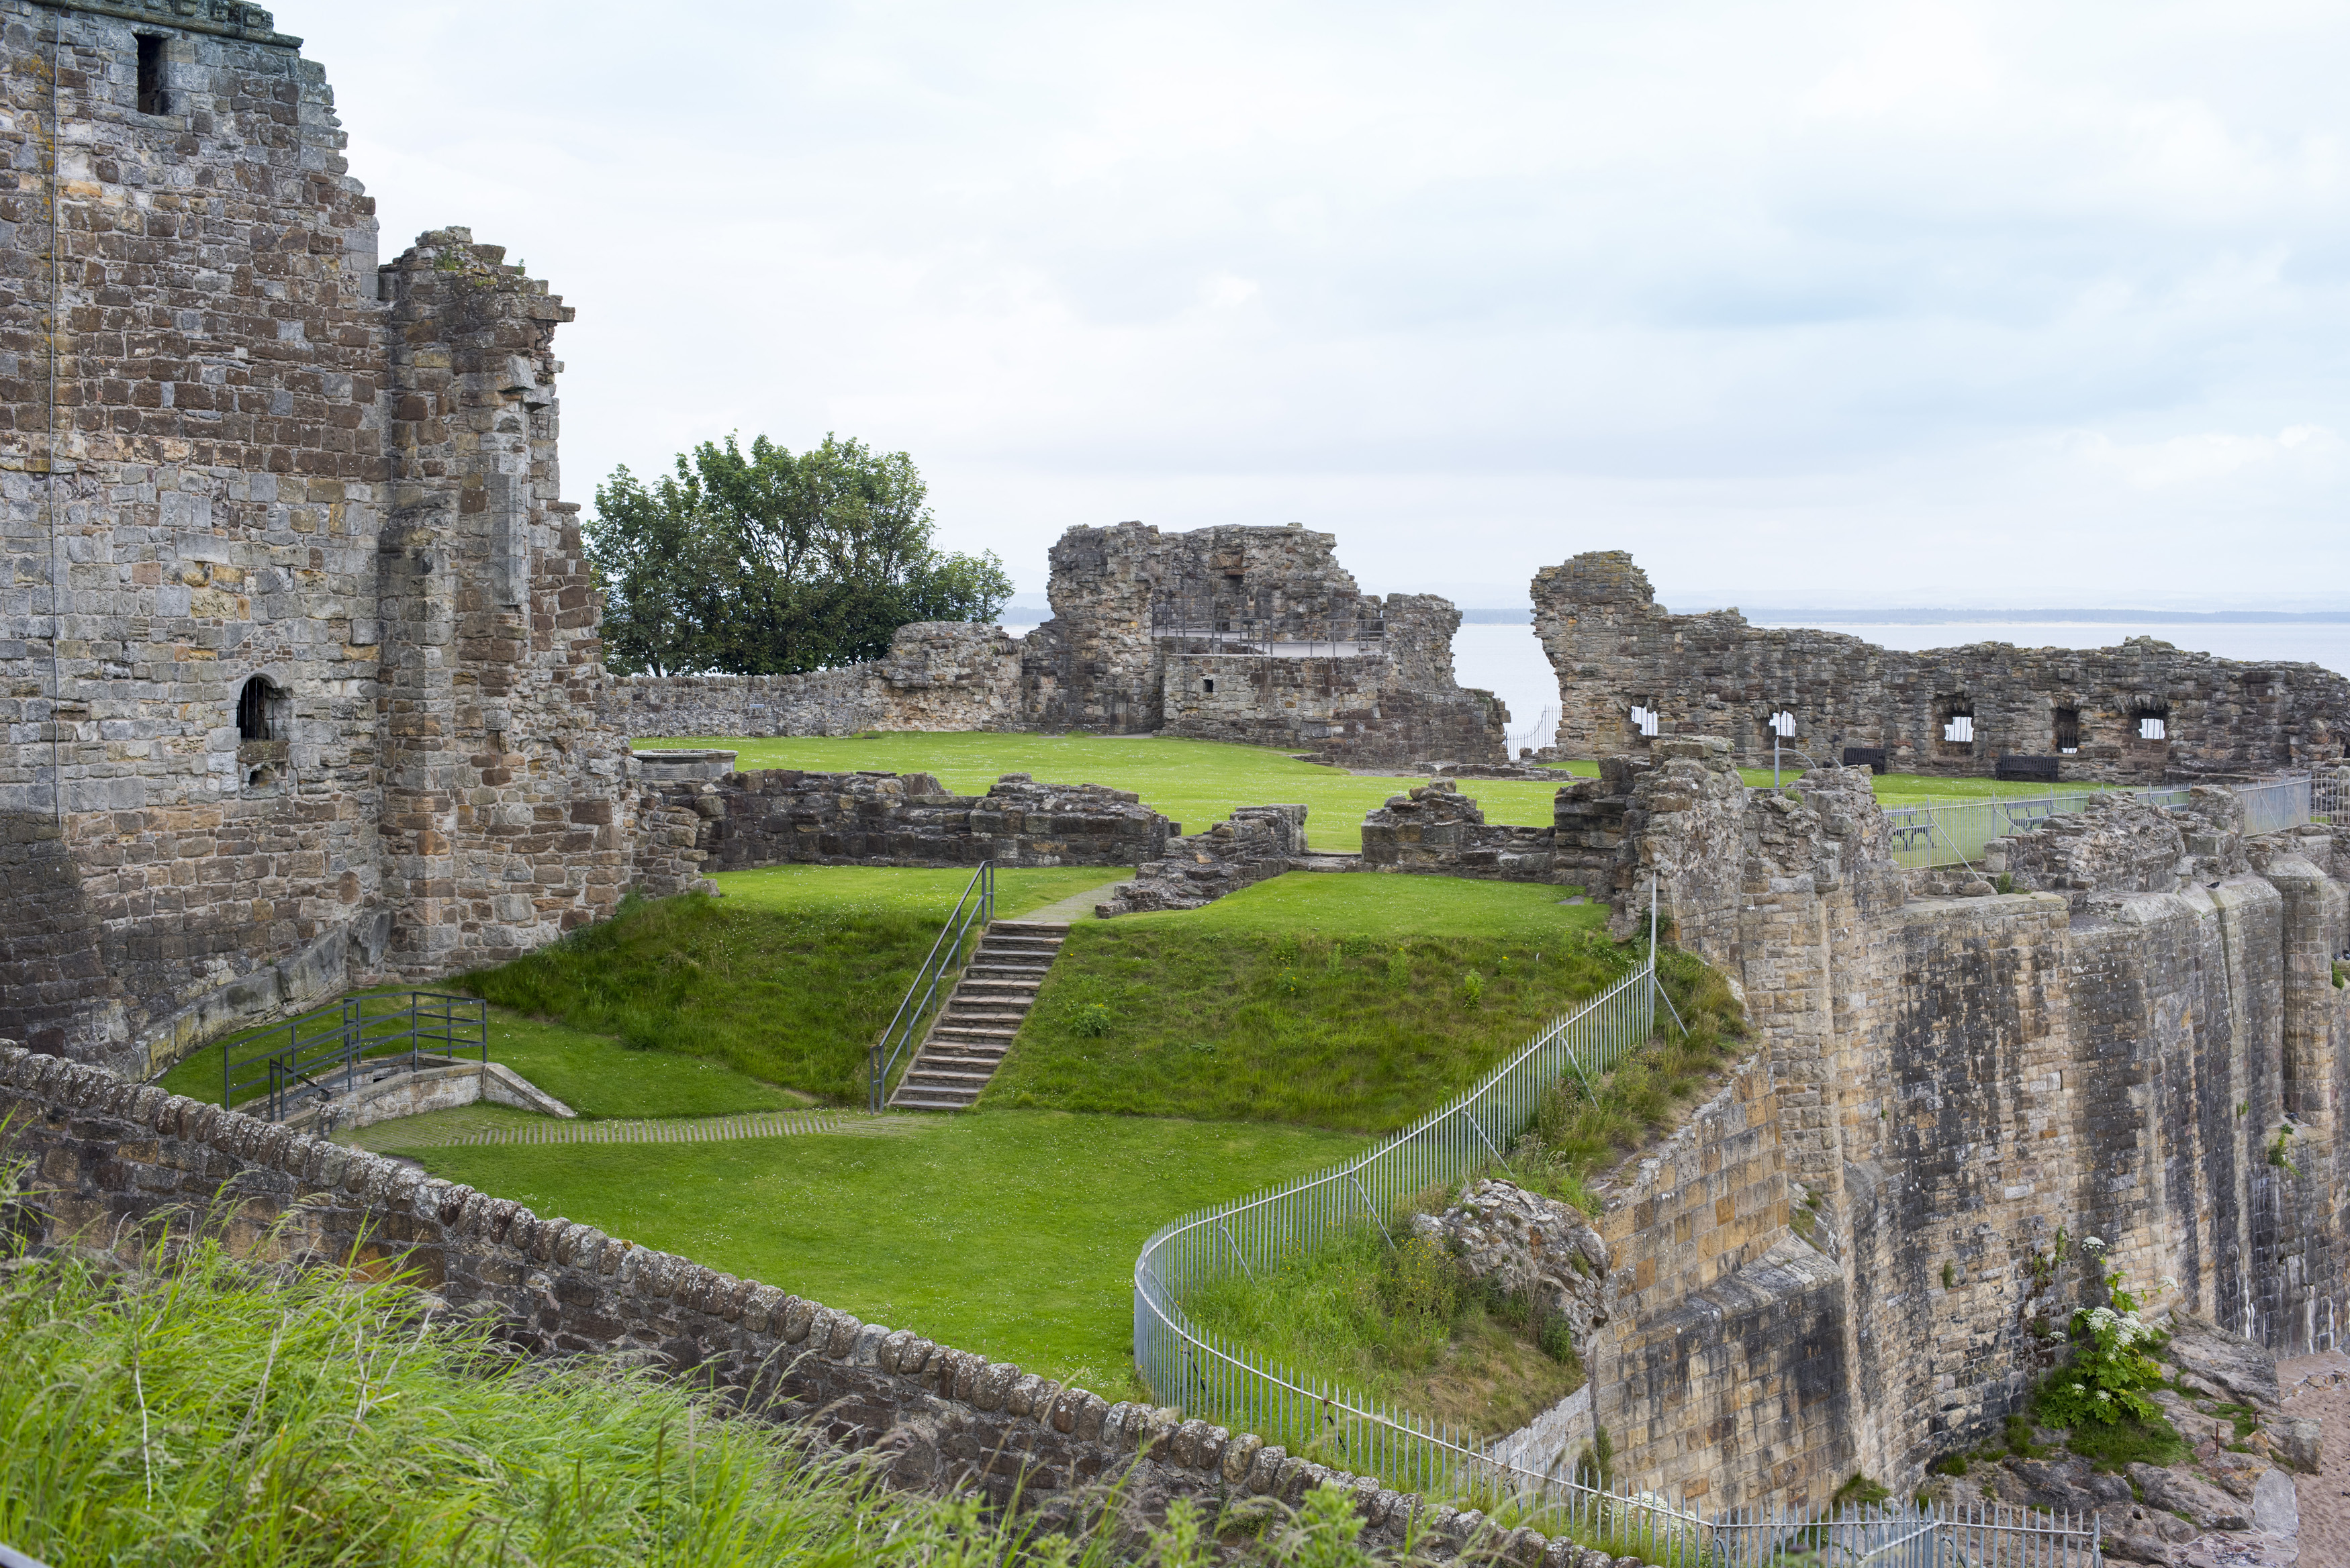 The ruins of Saint Andrews Castle near the fife shoreline, Scotland